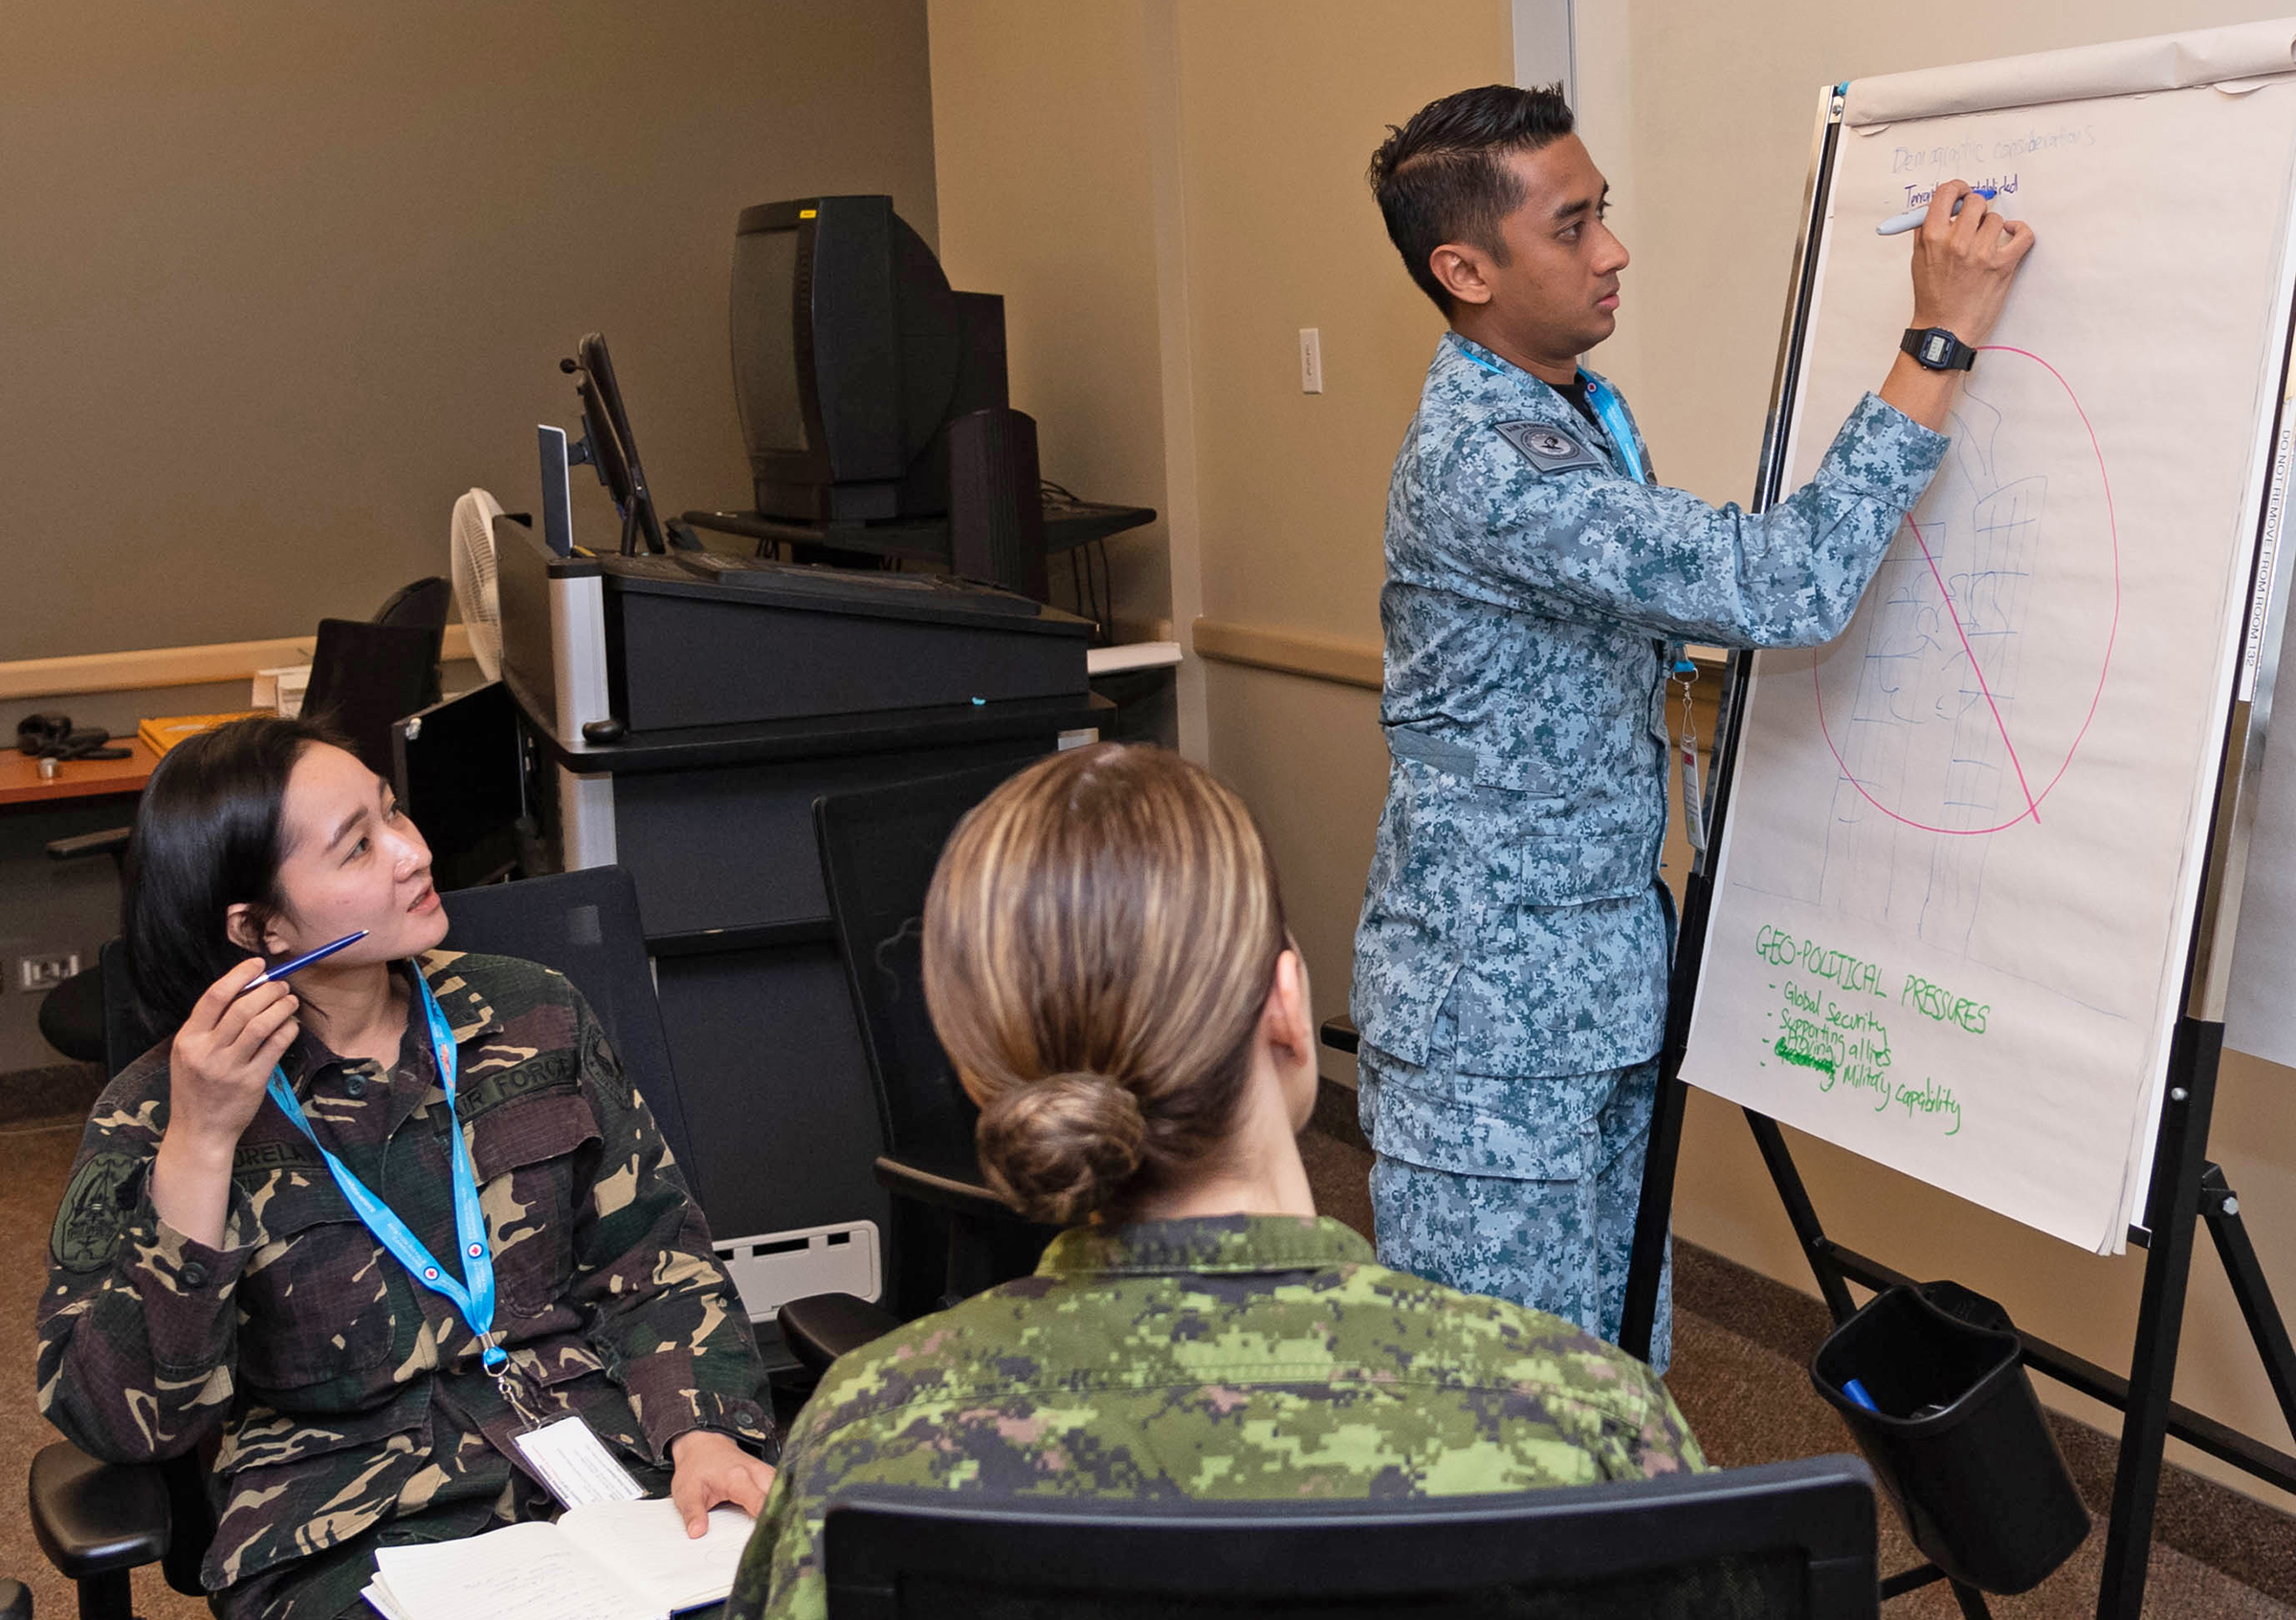 International participants in the Junior Enlisted Leadership Forum, held at 17 Wing Winnipeg, Manitoba, from October 21 to 25, 2019, work on a problem together. PHOTO: Corporal Brian Lindgren, WG2019-0525-026